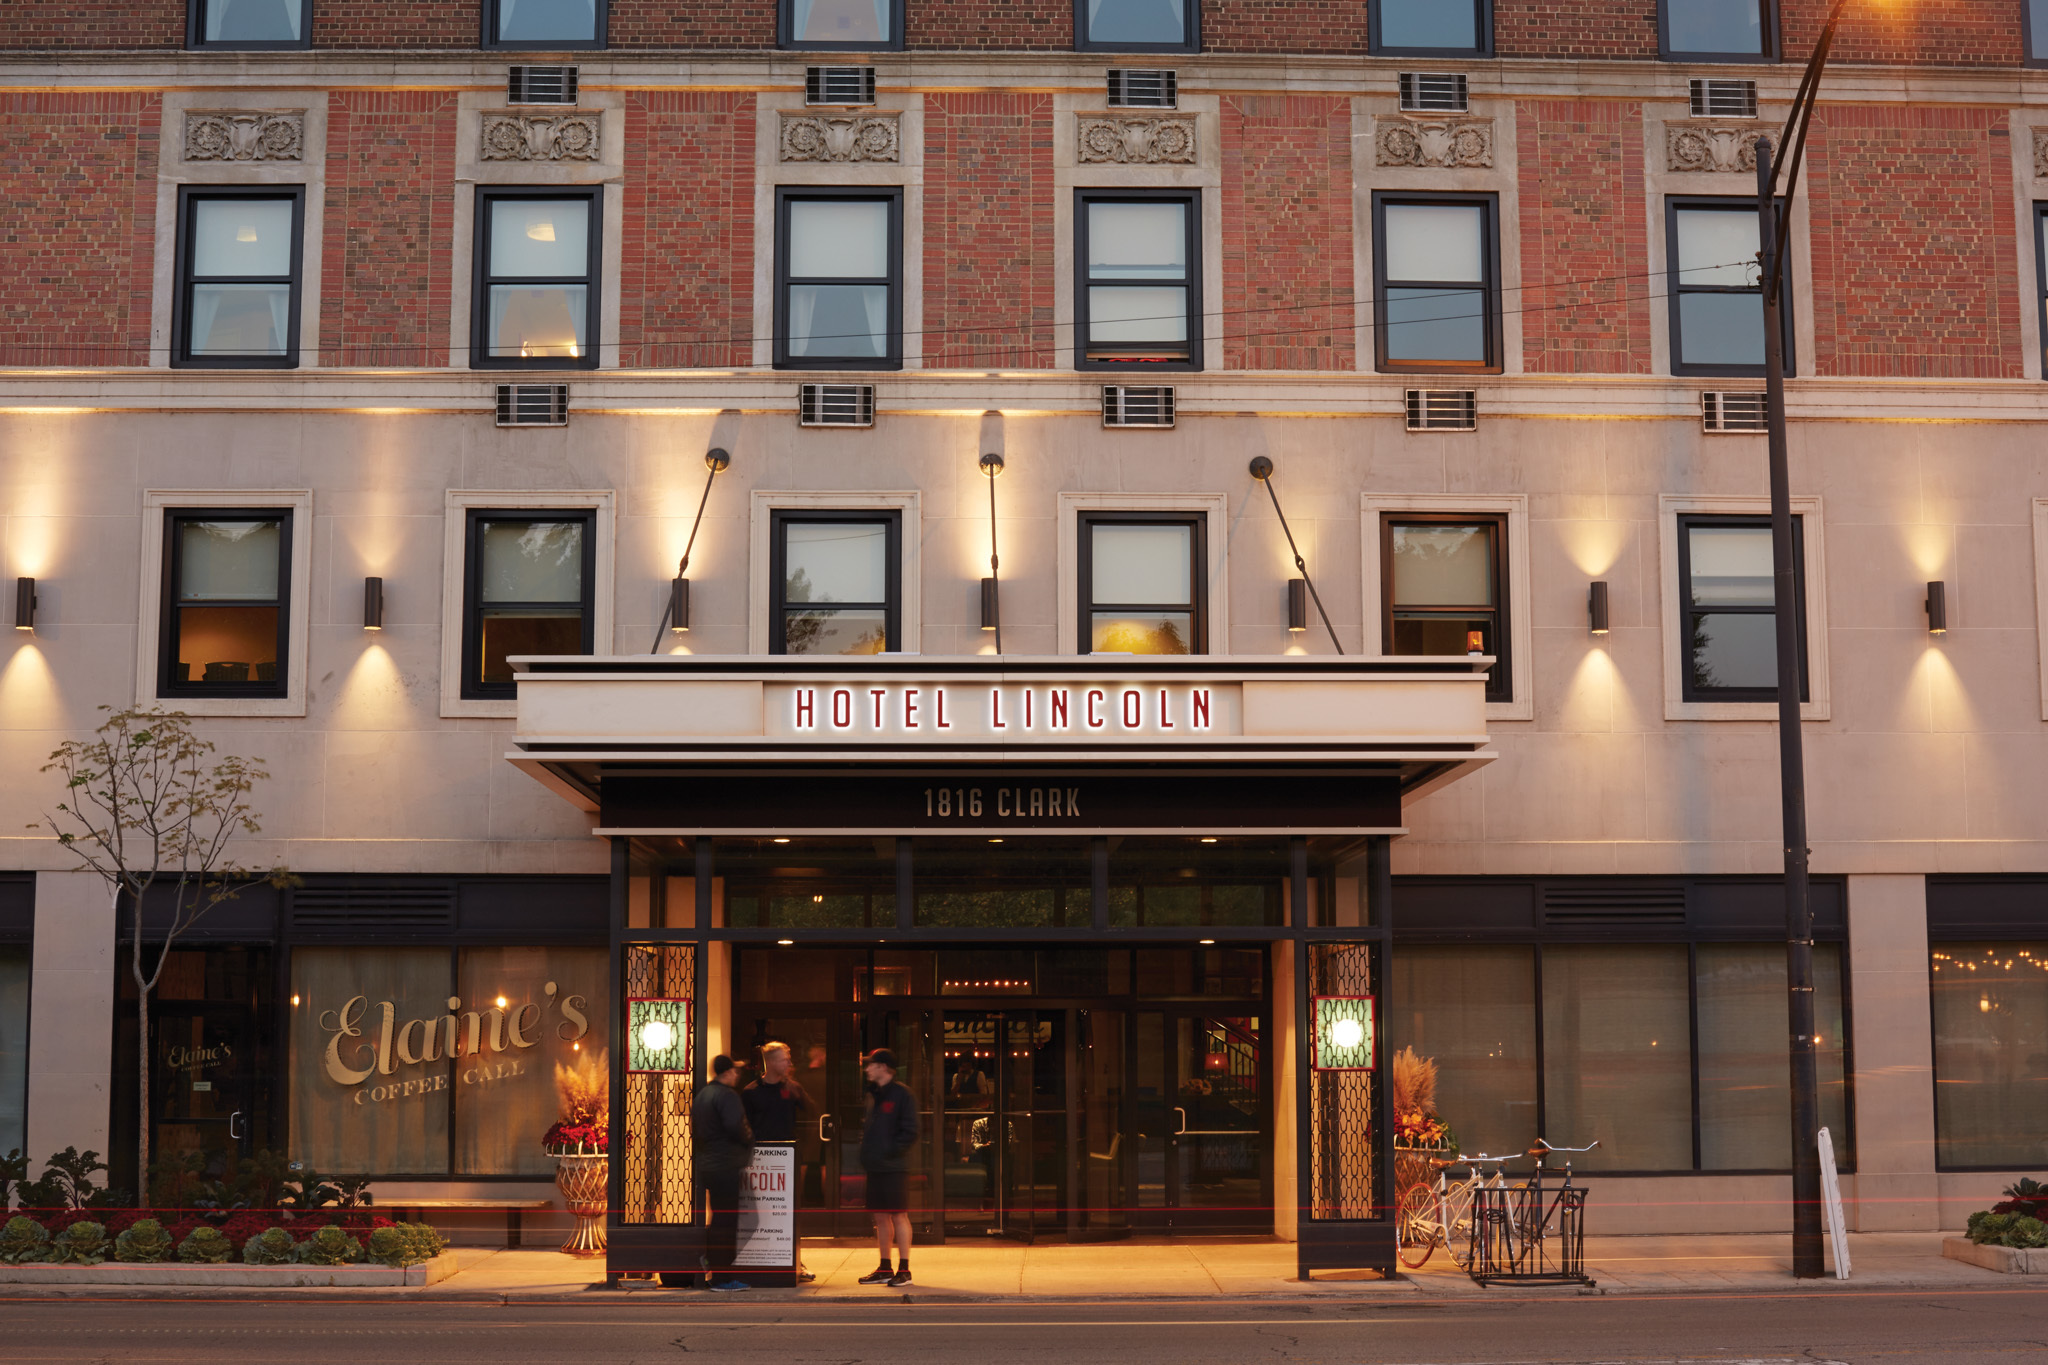 inn il in travel weekly s lincoln class quality gds hotels tourist suites codes reservation